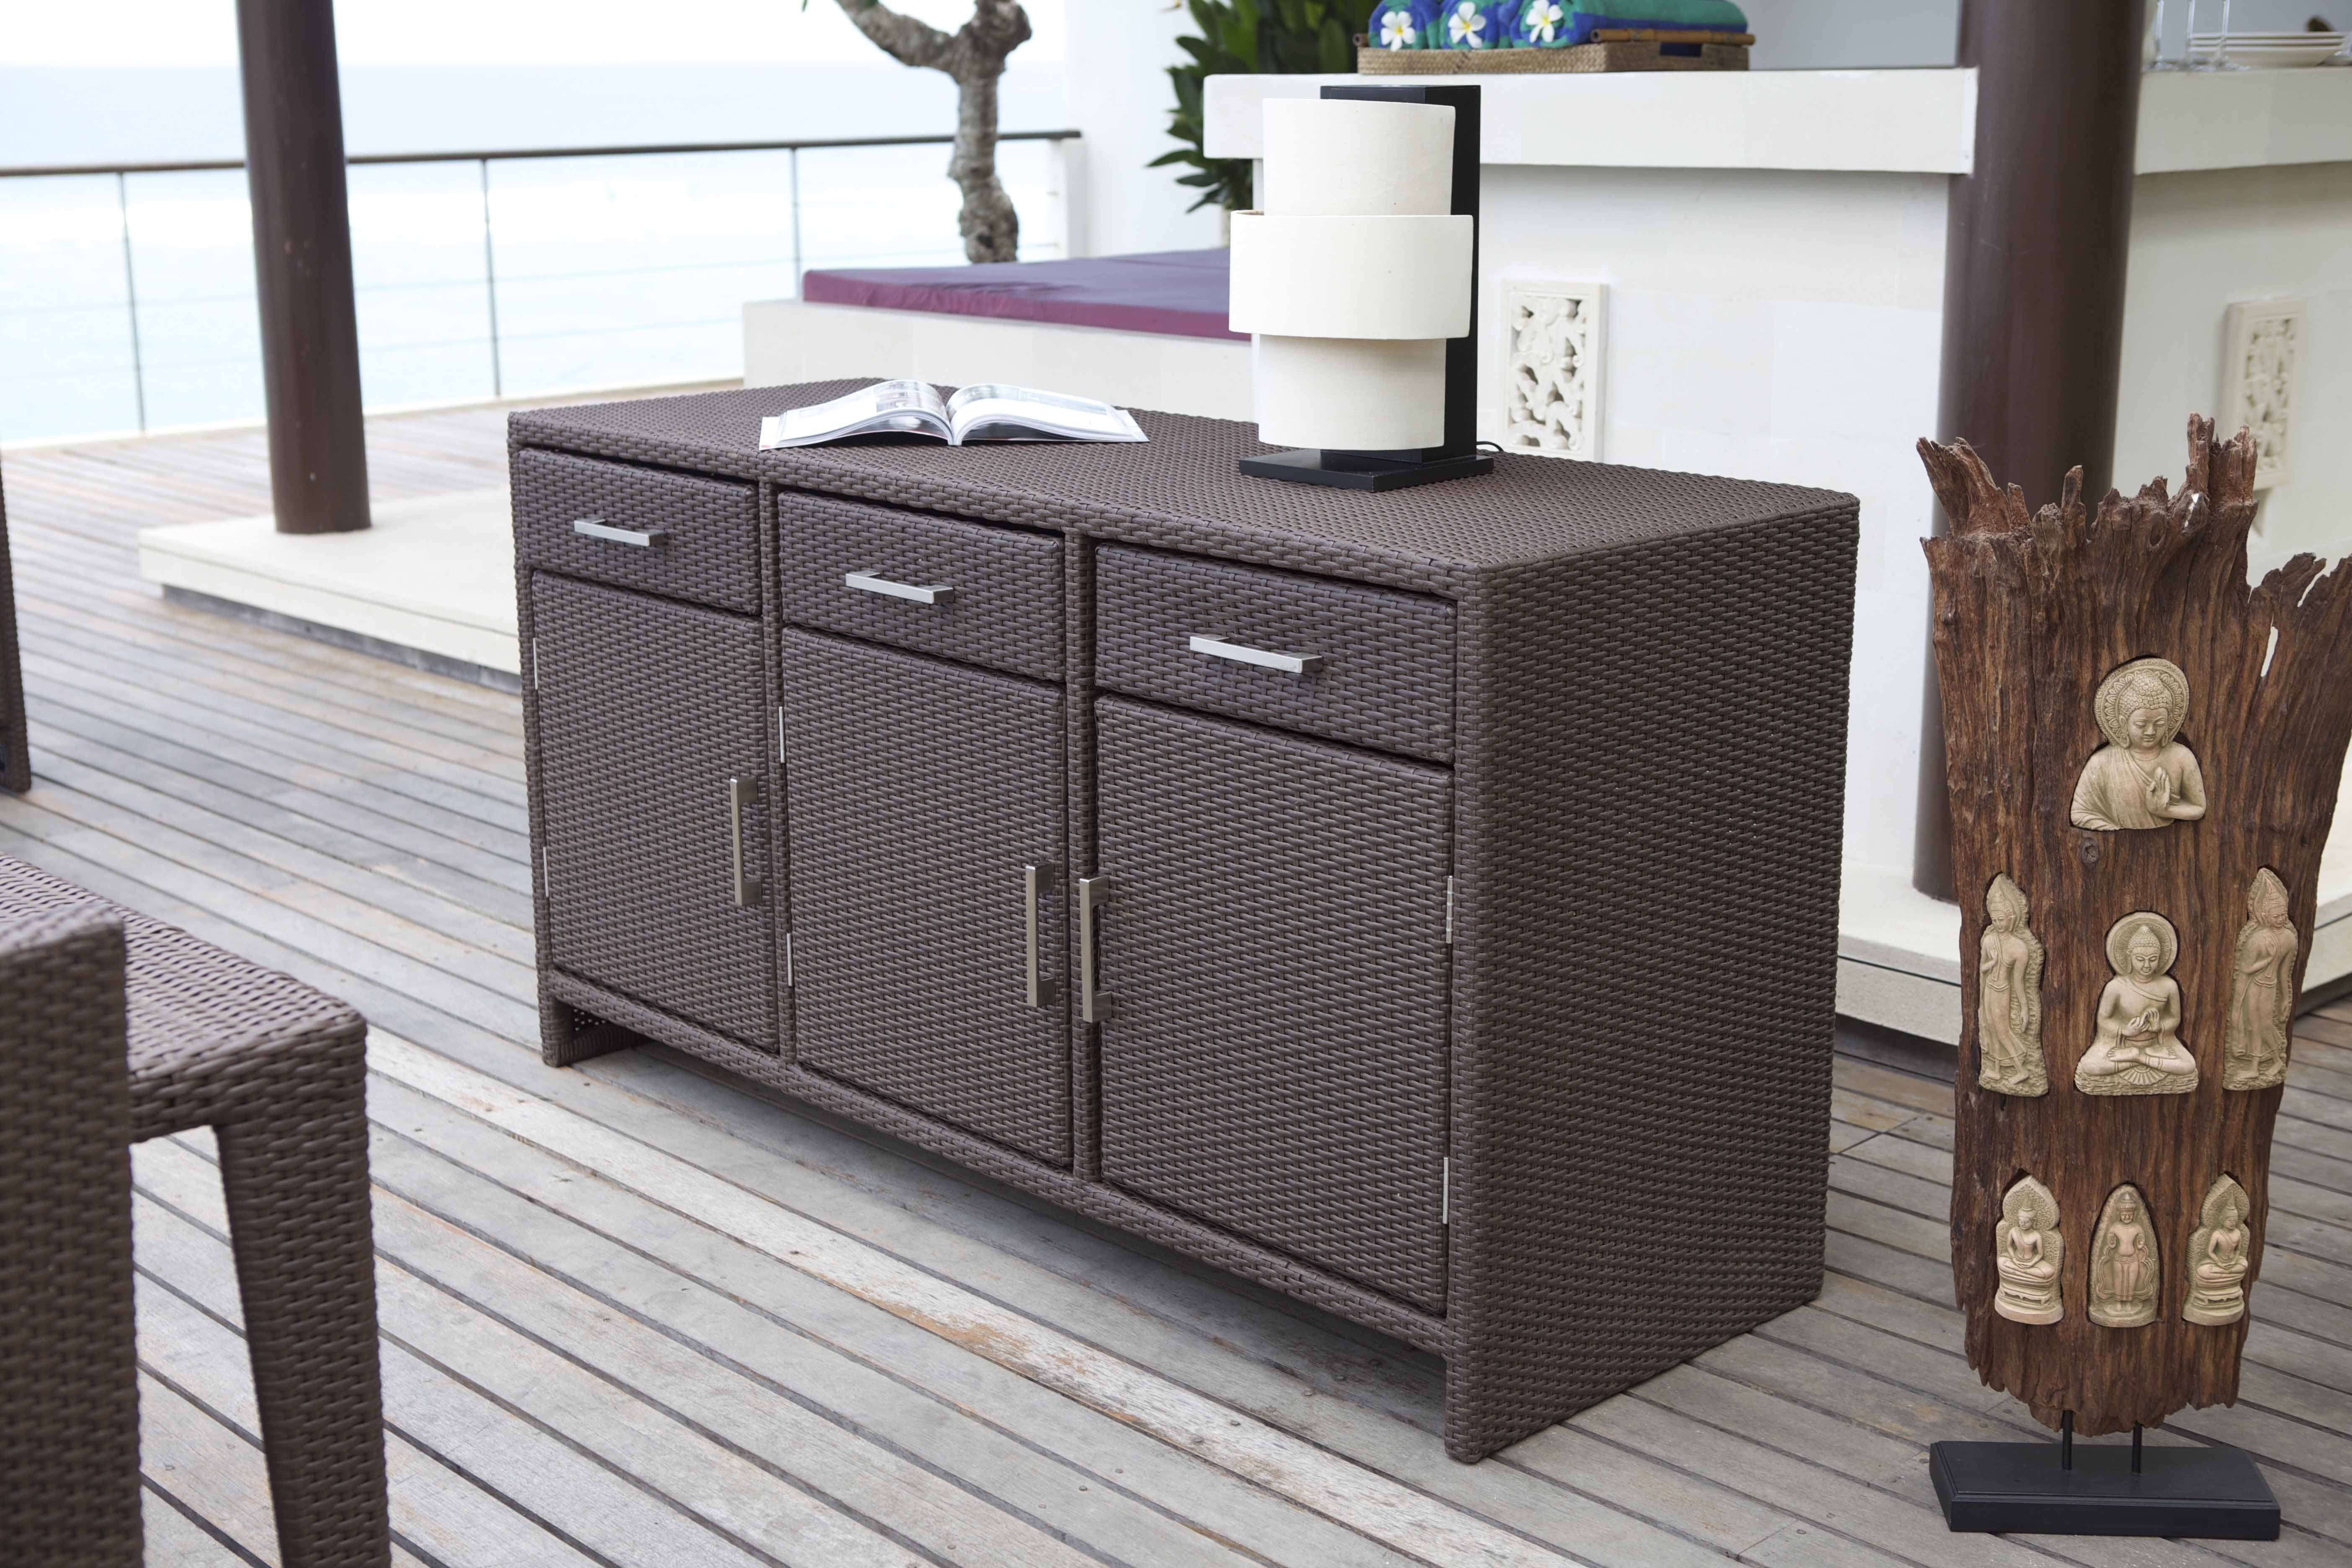 Opal Sideboards – Skyline Design Inside Outdoor Sideboards (View 5 of 20)